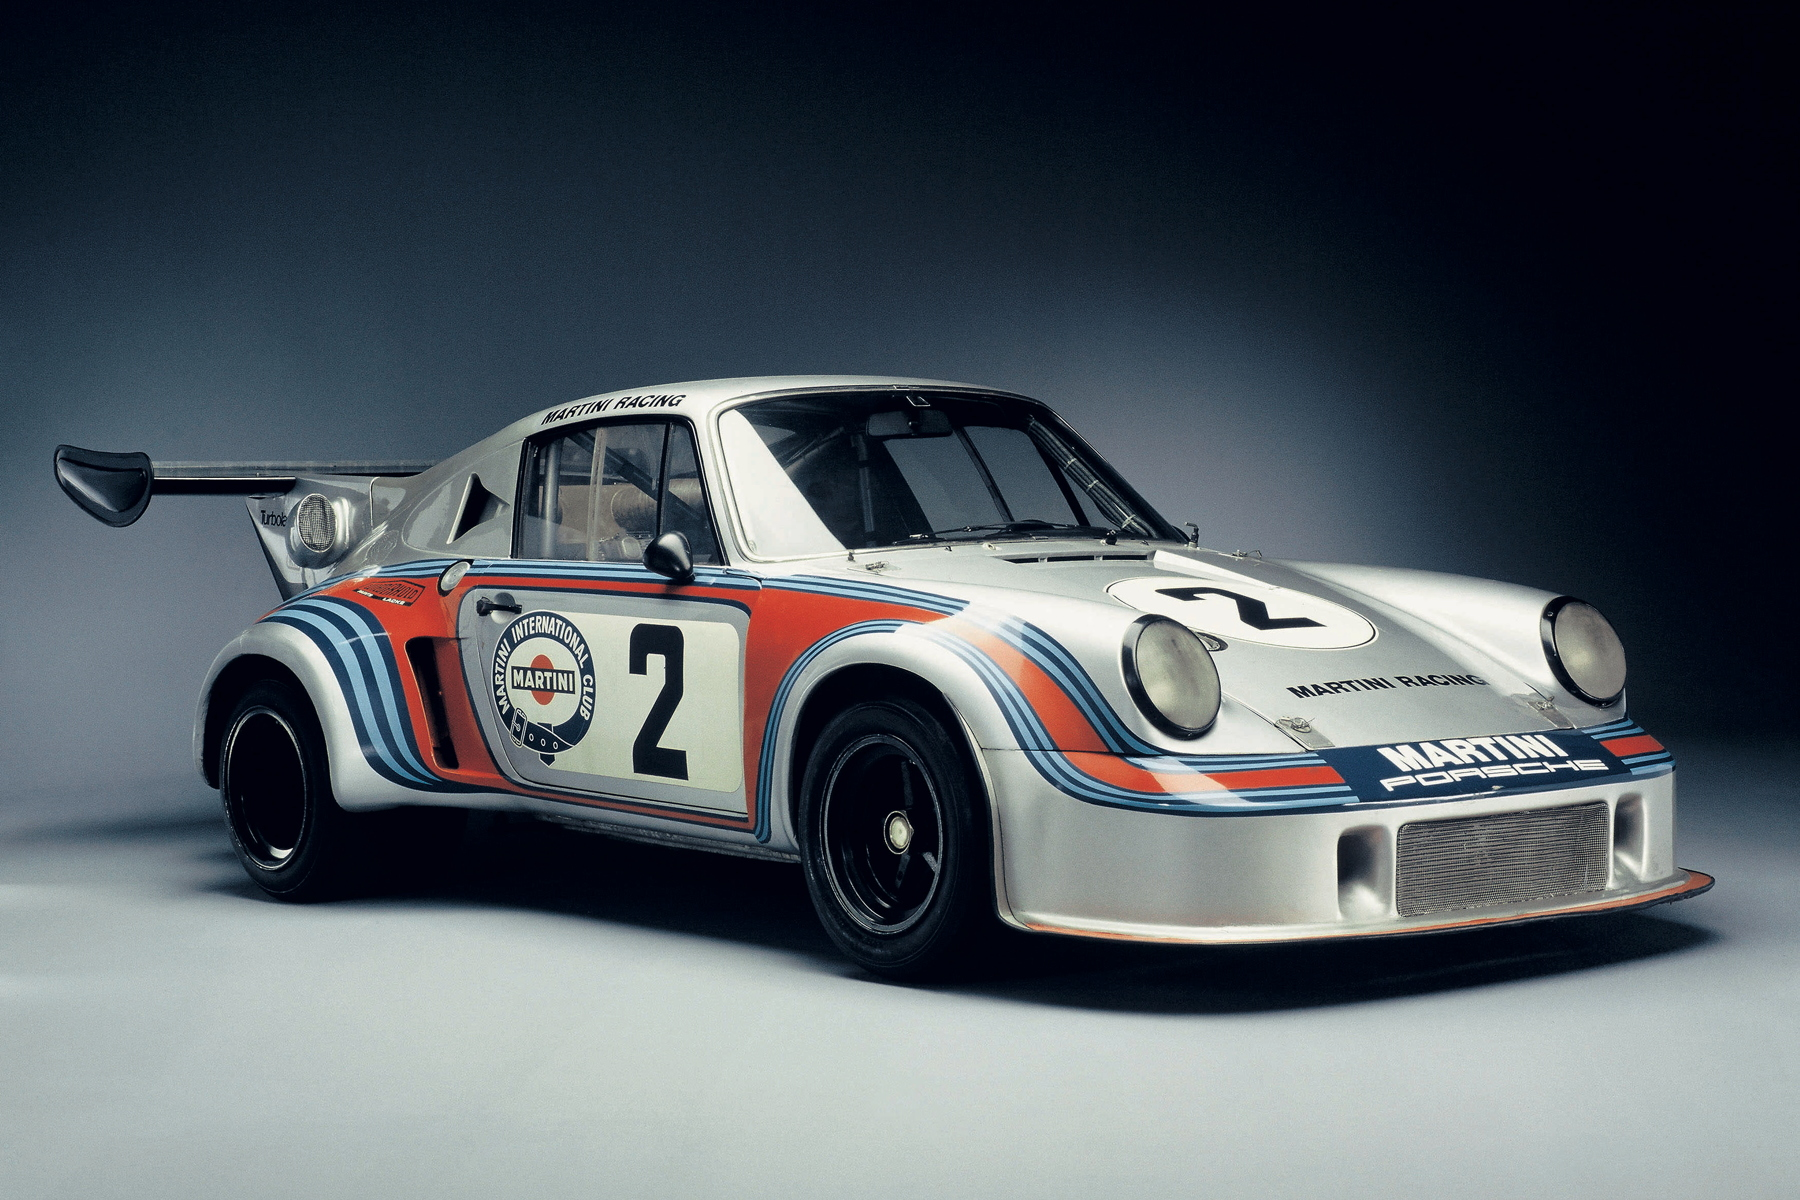 porsche 911 le mans with 24 Hours Of Le Mans A Porsche 911 History on 24 Hours Of Le Mans A Porsche 911 History likewise 2012 Best Year History Porsche in addition Tuthill Porsche Invites Safari Classic Rally Entries moreover Porsche 911 Carrera RSR besides Porsche 911 T R.